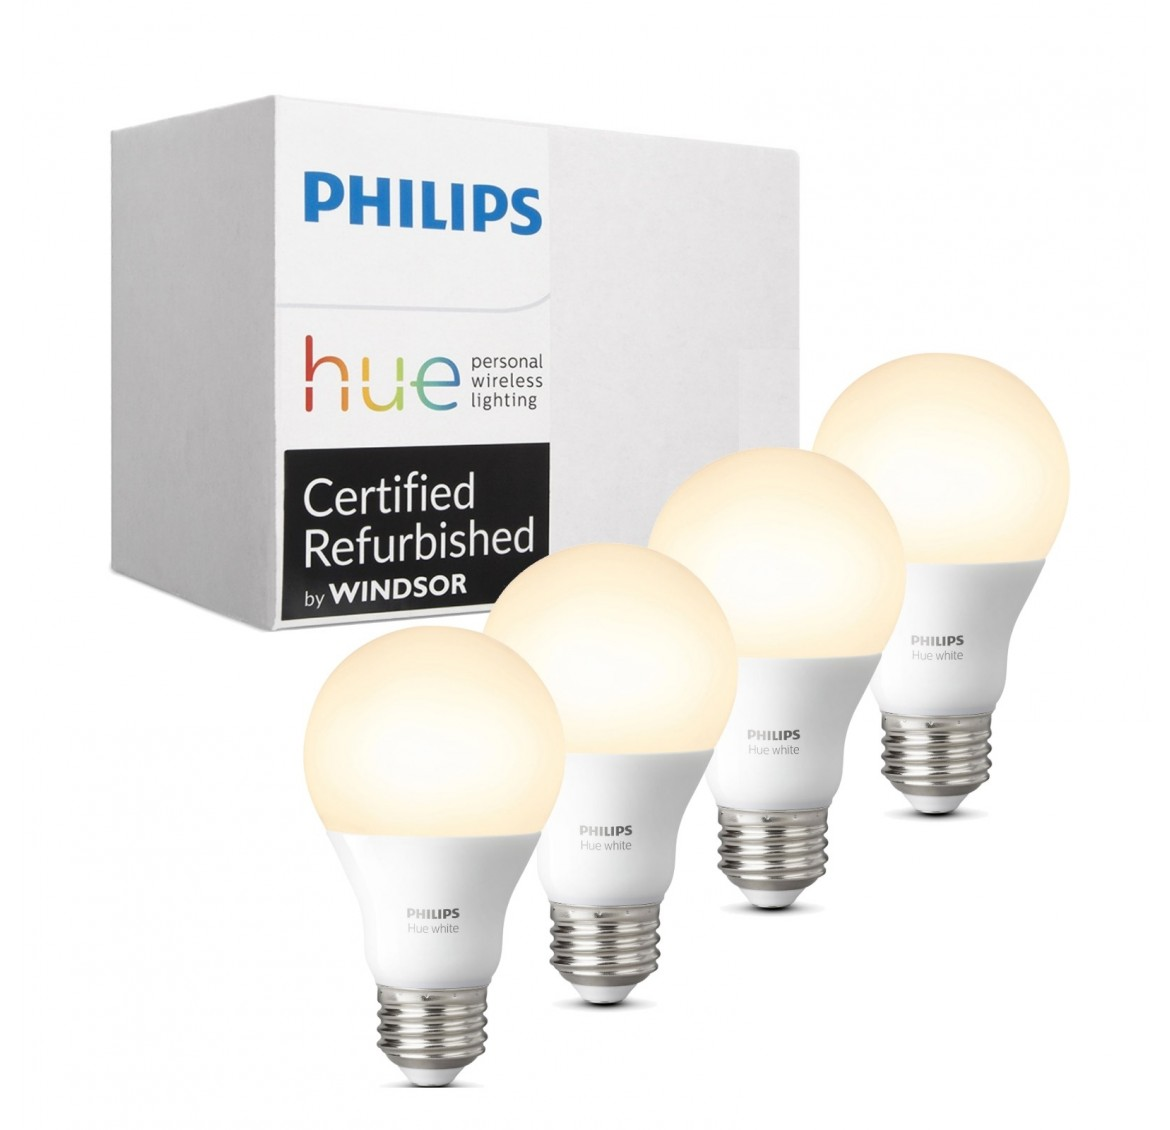 Philips Hue White 3rd Generation A19 Dimmable LED Smart 4-Bulb Kit (Bridge not included, Works with Amazon Alexa, Google Assistant, and Apple HomeKit)